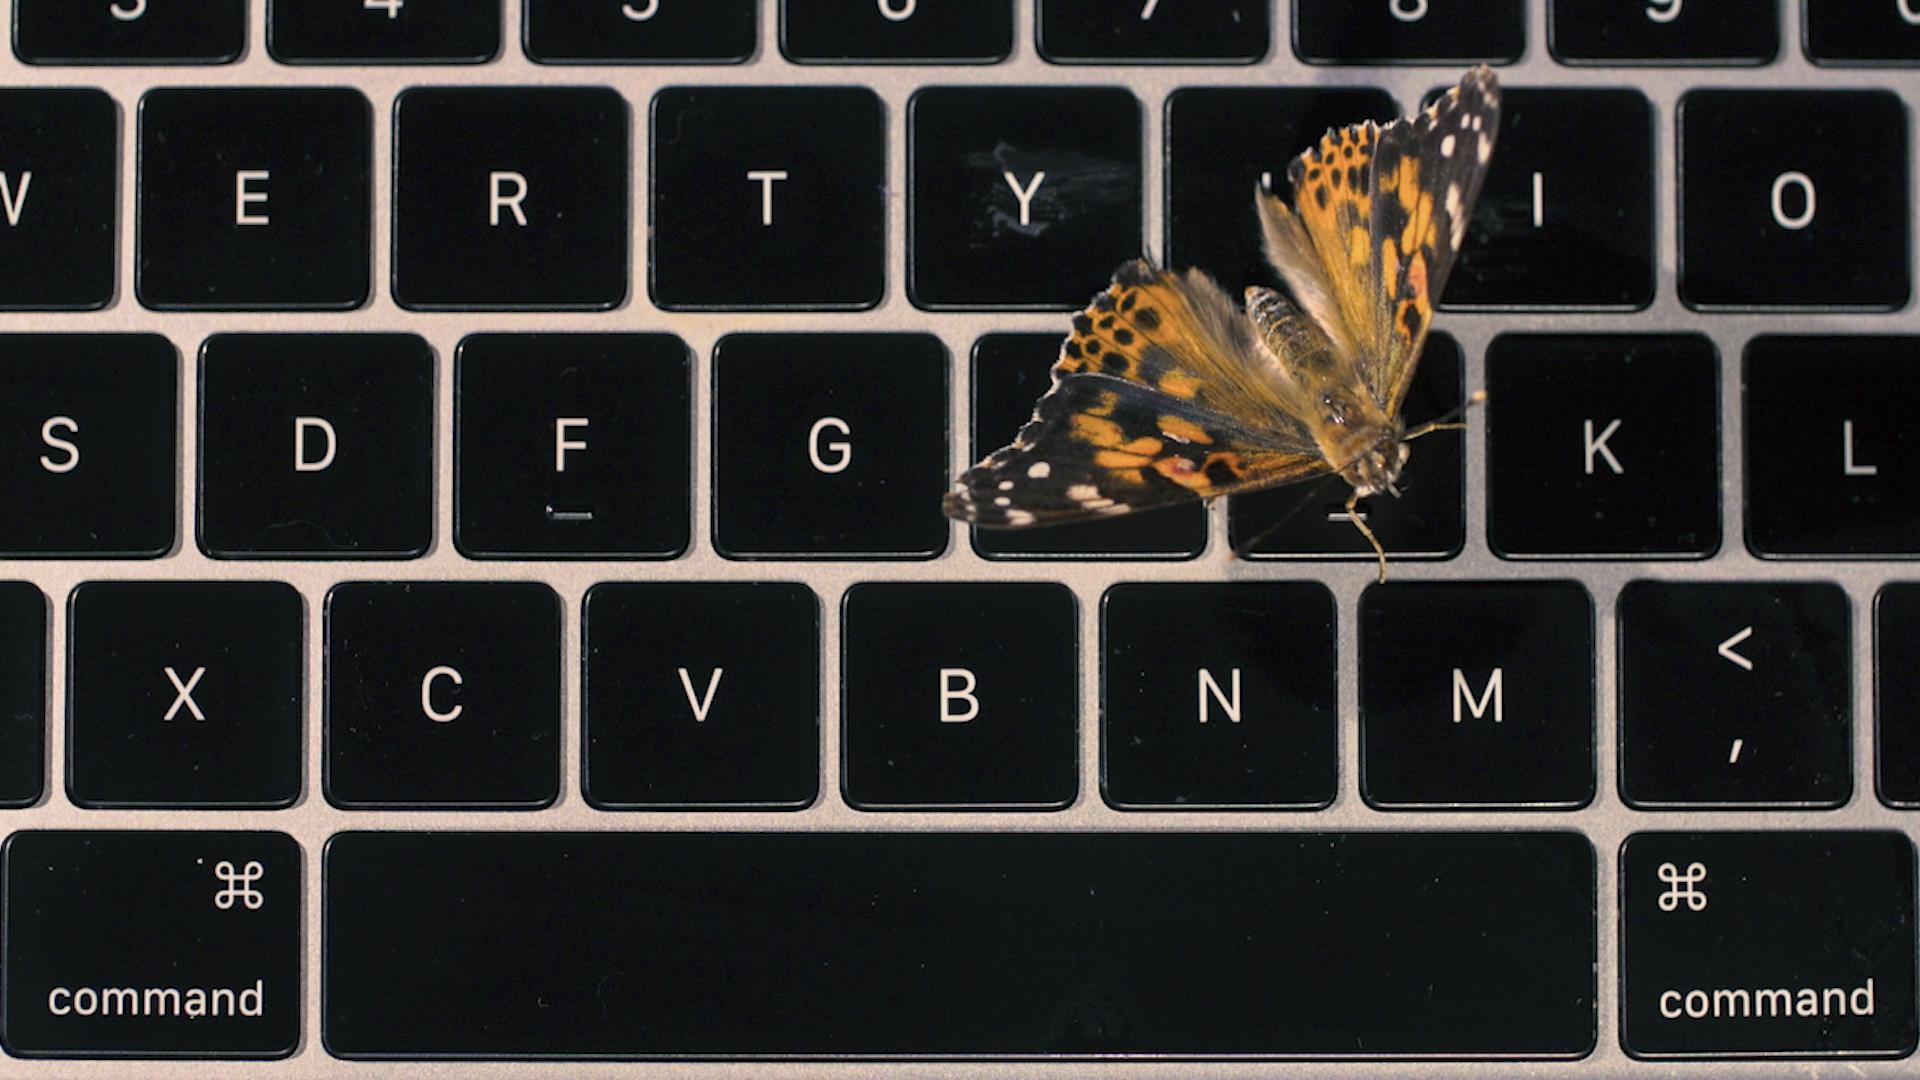 hight resolution of apple s faulty macbook butterfly keyboard explained with real butterflies